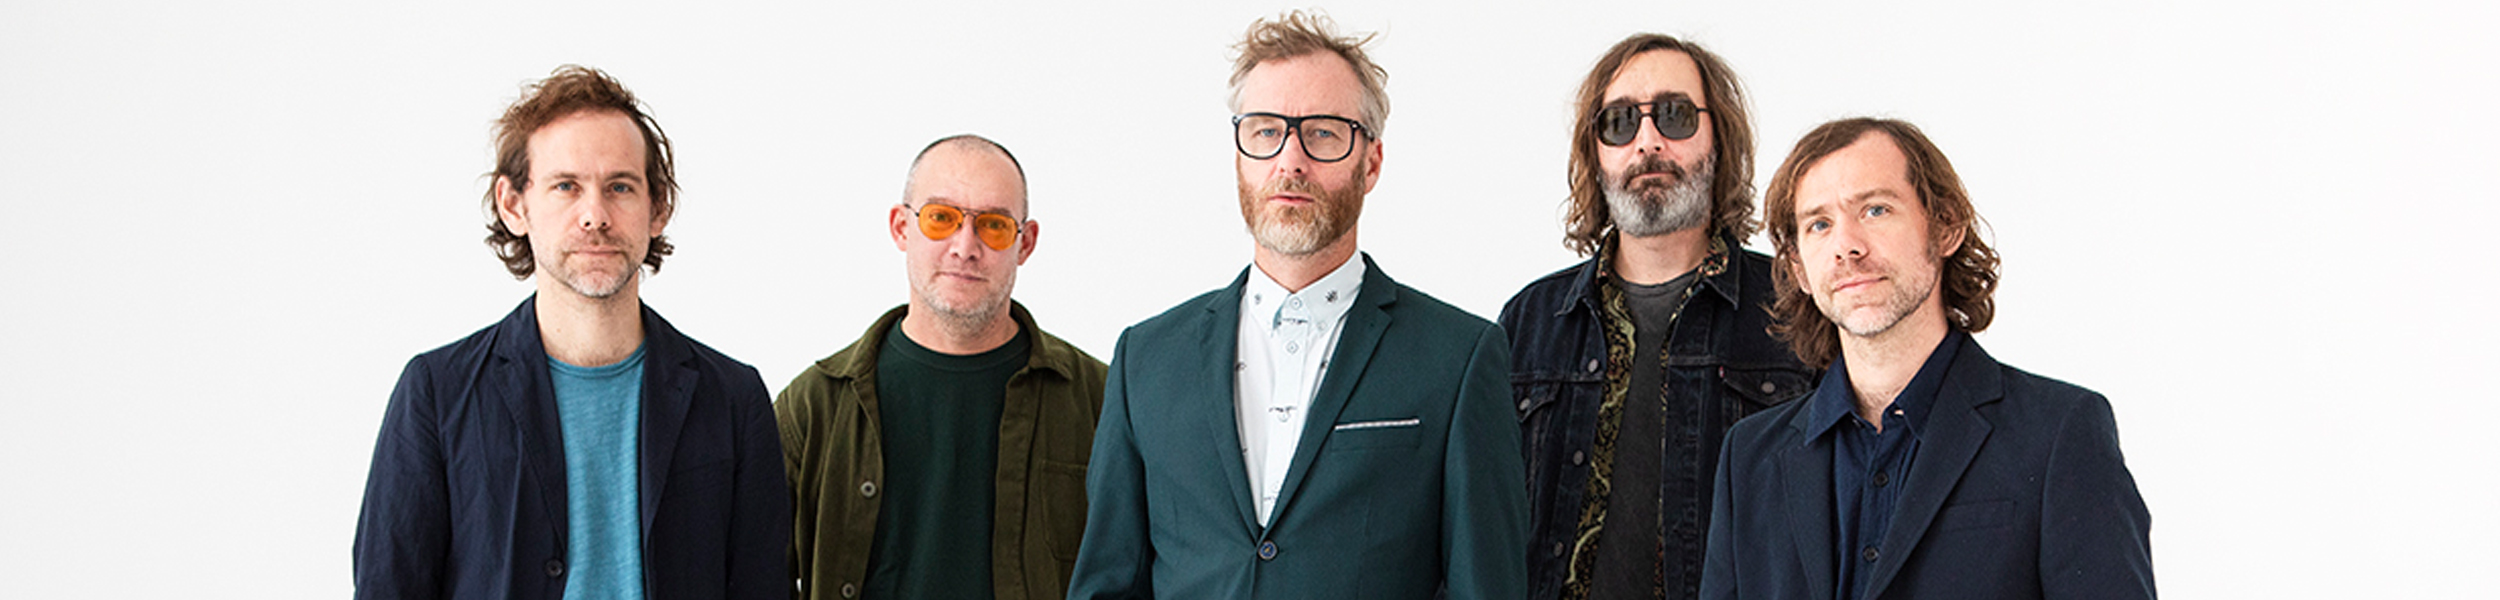 The National - The National To Perform at Brooklyn's Barclays Centre on June 5th